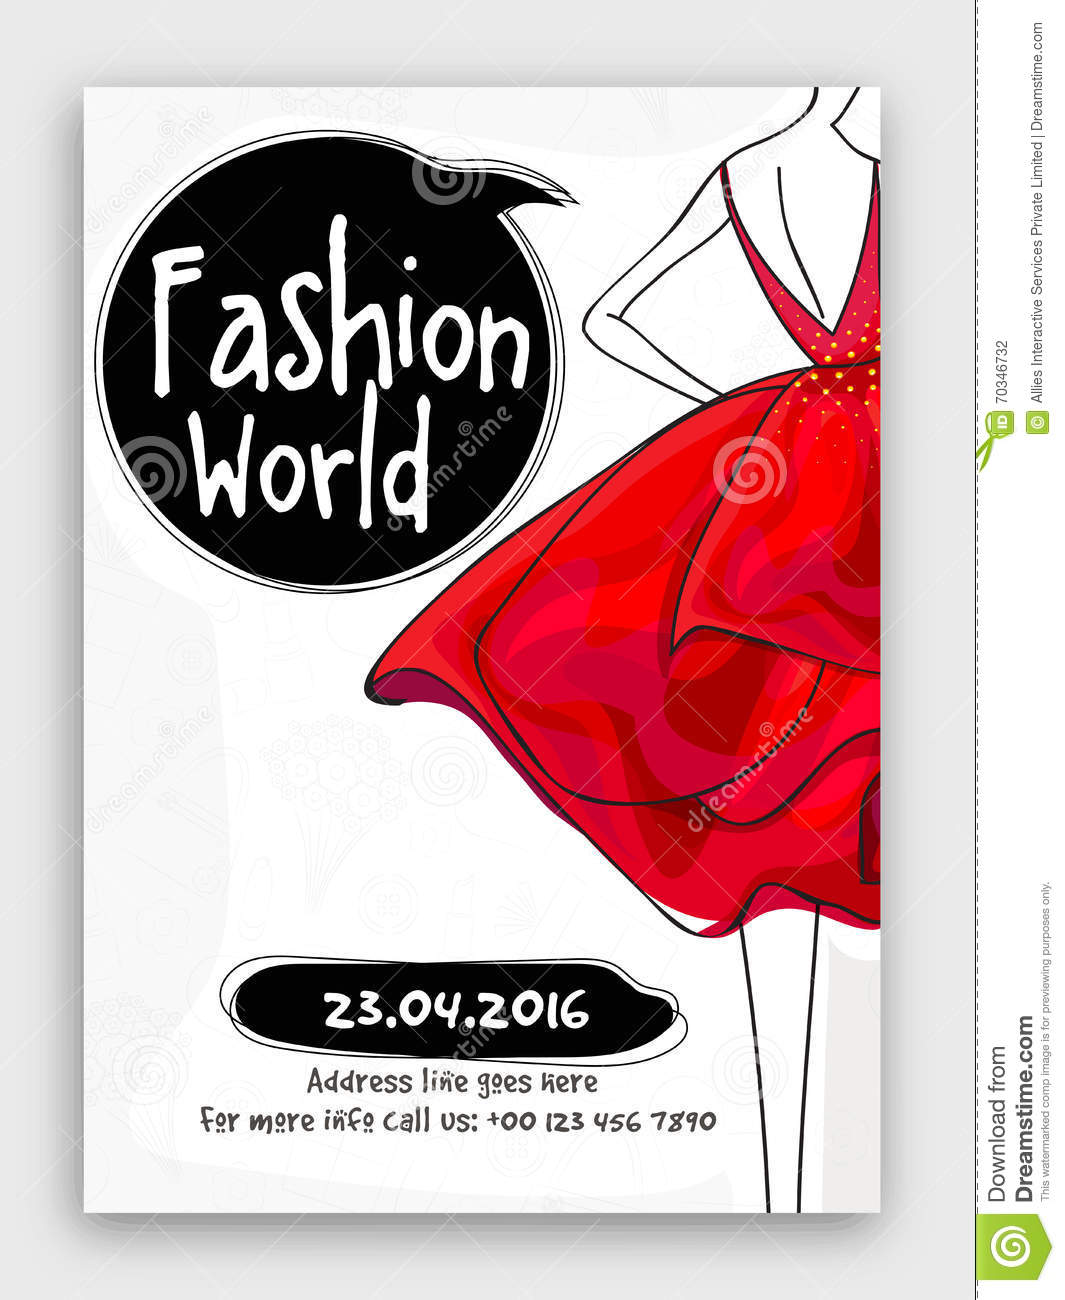 Fashion world flyer template or banner design royalty for Fashion flyers templates for free